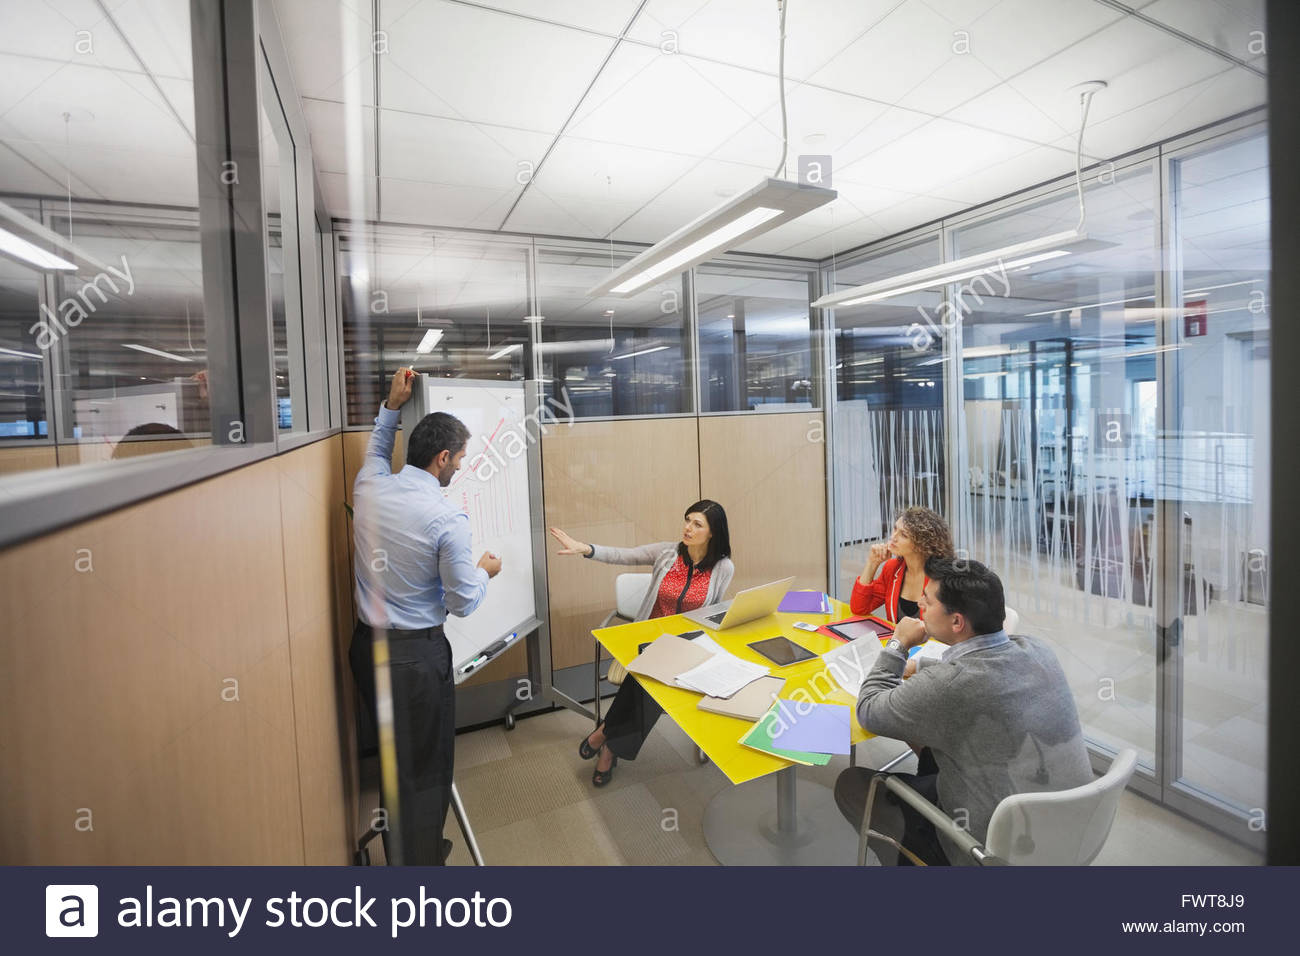 Business people in animated discussion - Stock Image